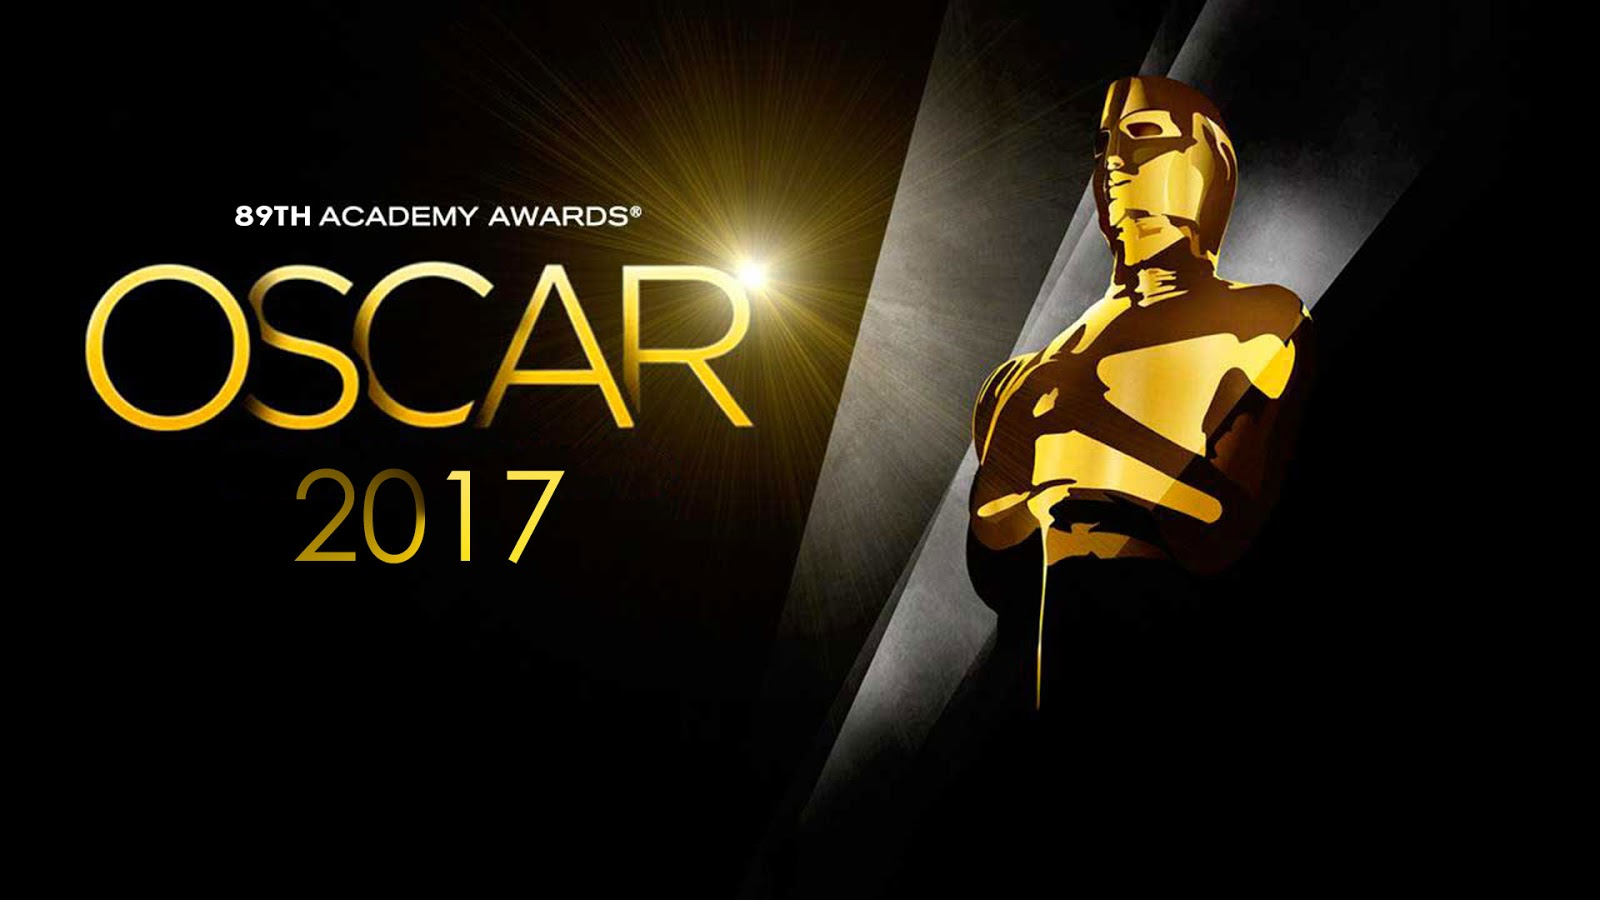 Review and Analysis of the 89th Academy Awards